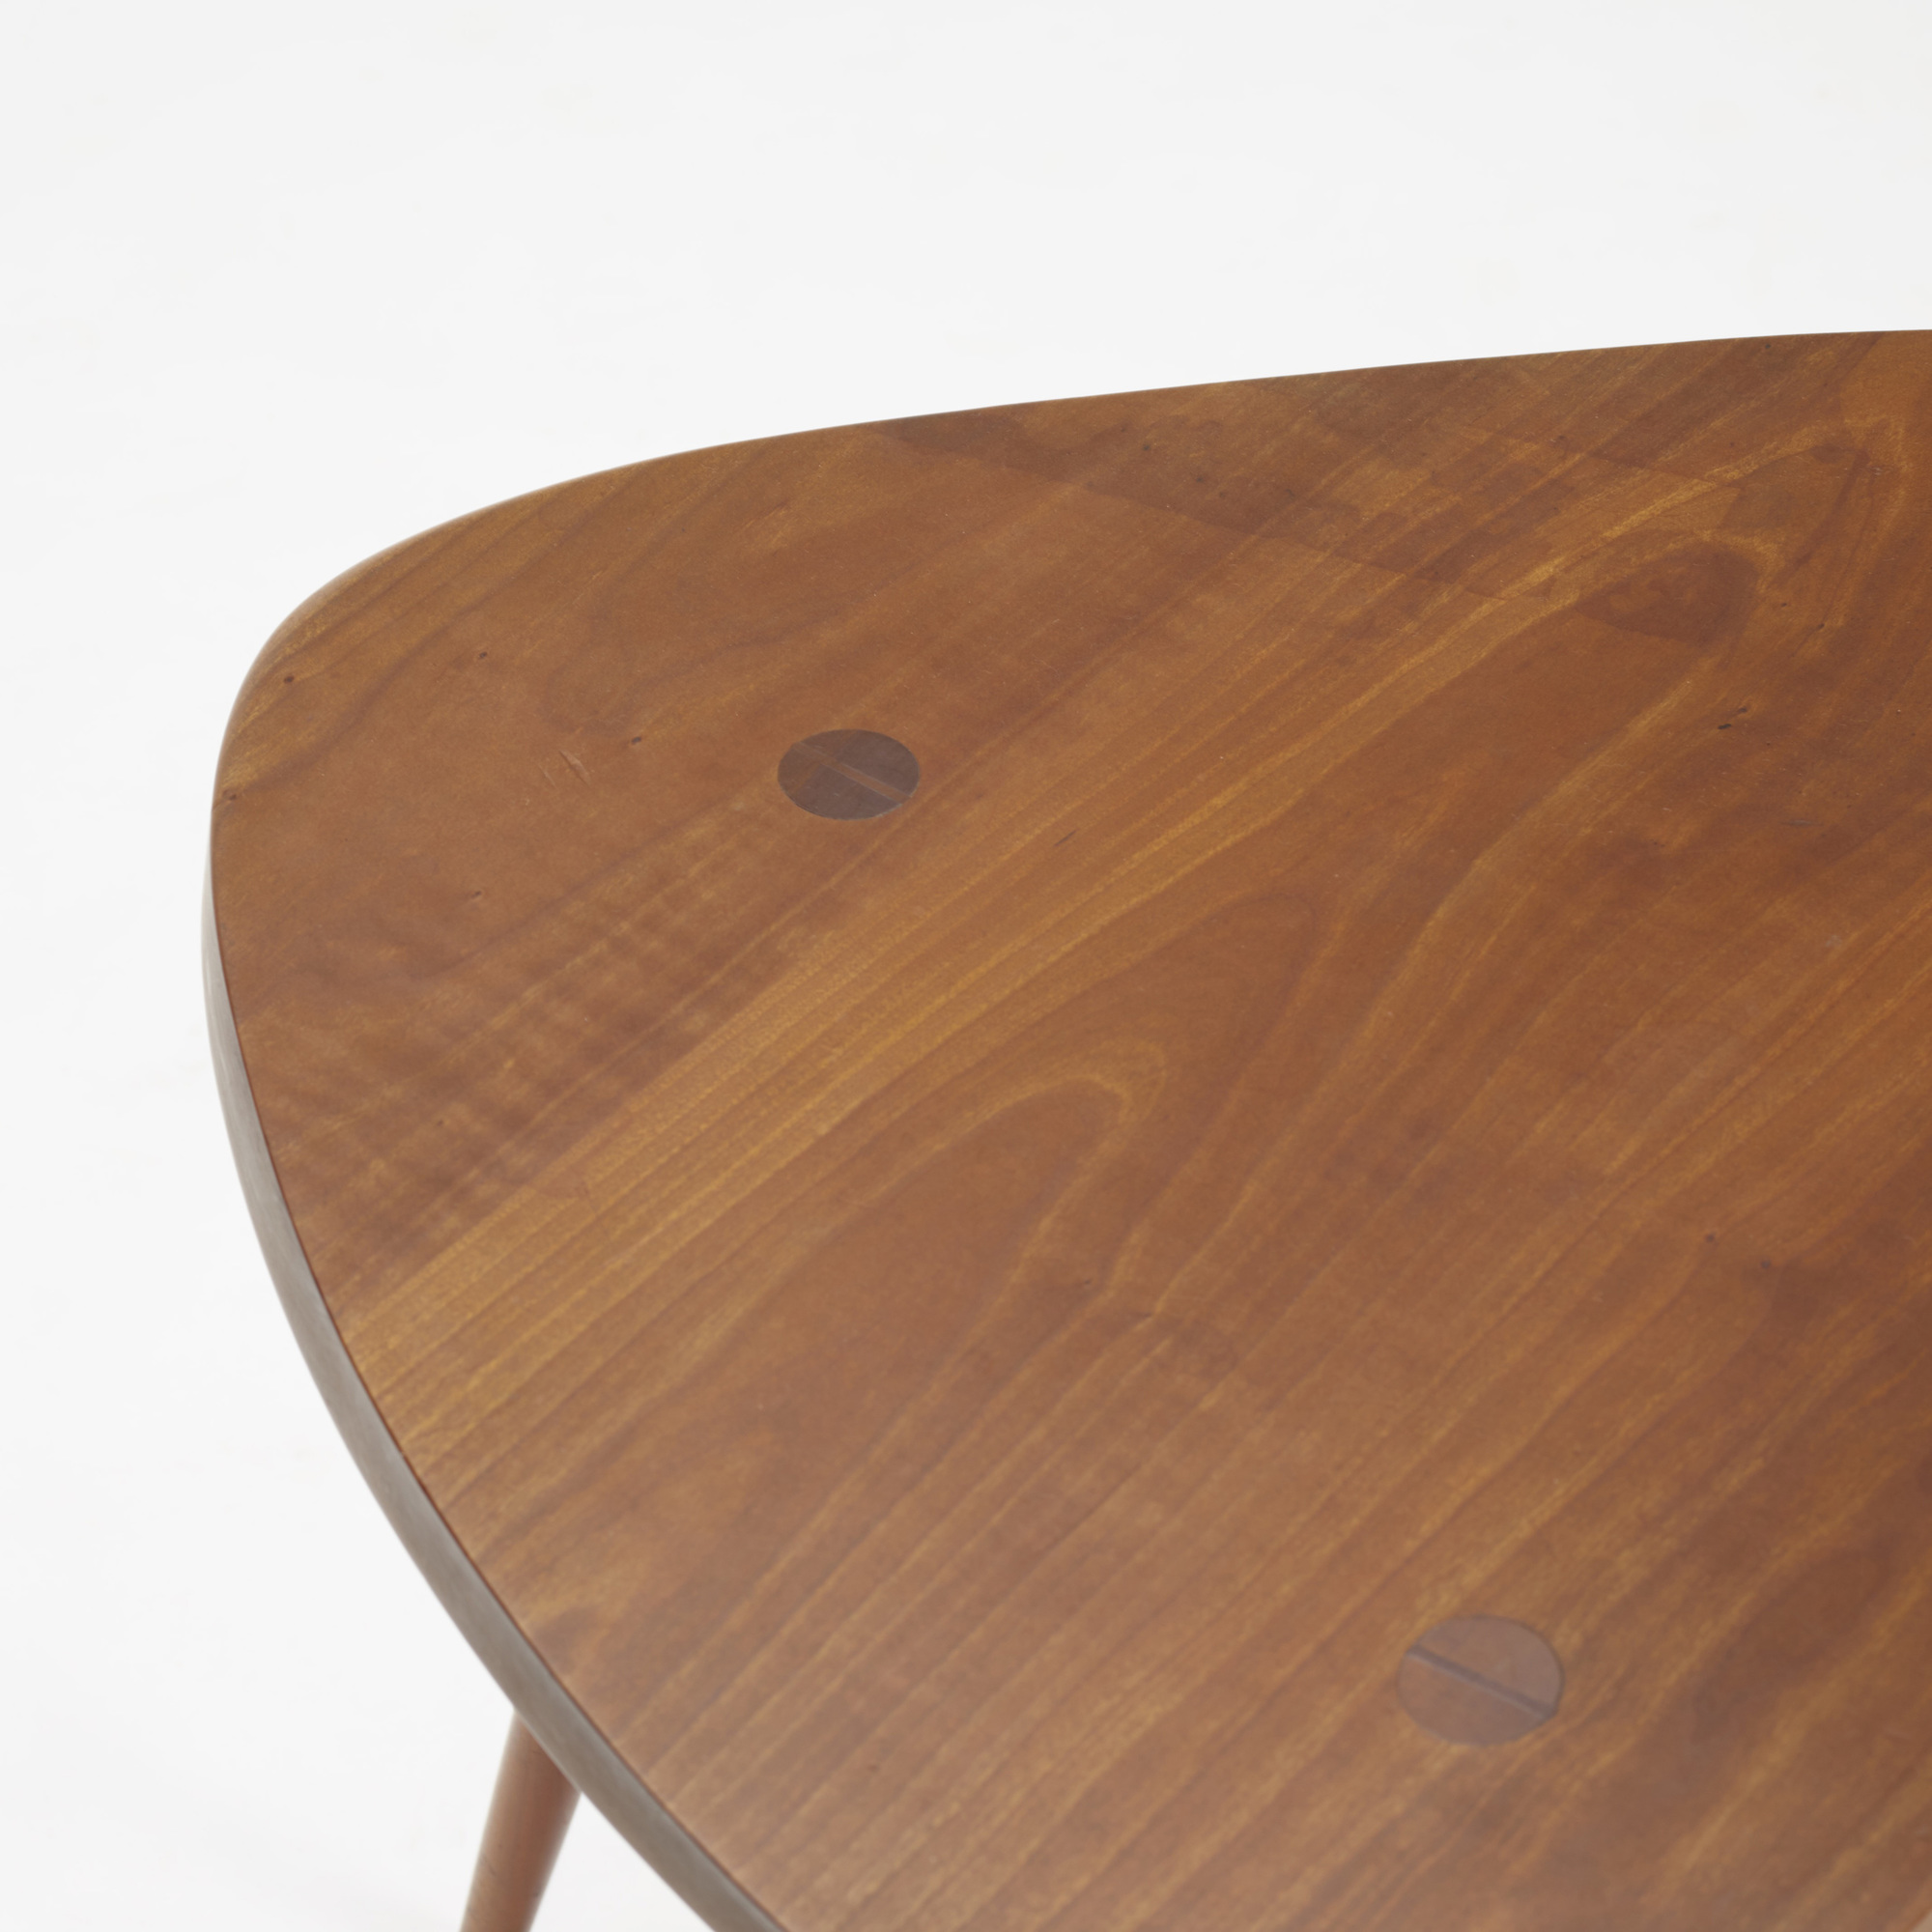 175: Phillip Lloyd Powell / occasional table (3 of 3)